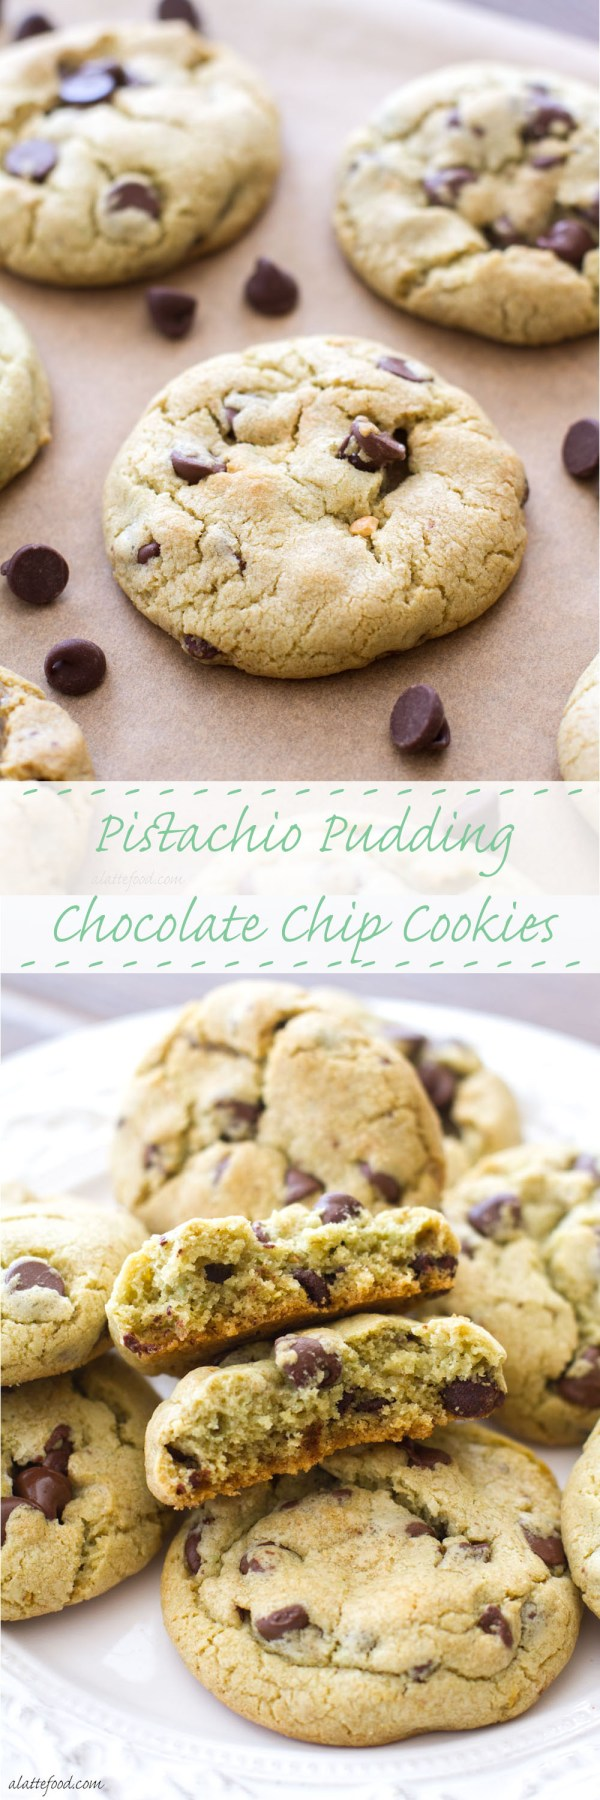 These soft and chewy pistachio pudding chocolate chip cookies are a fun twist on the classic chocolate chip cookie recipe! A perfect St. Patrick's Day dessert! | www.alattefood.com